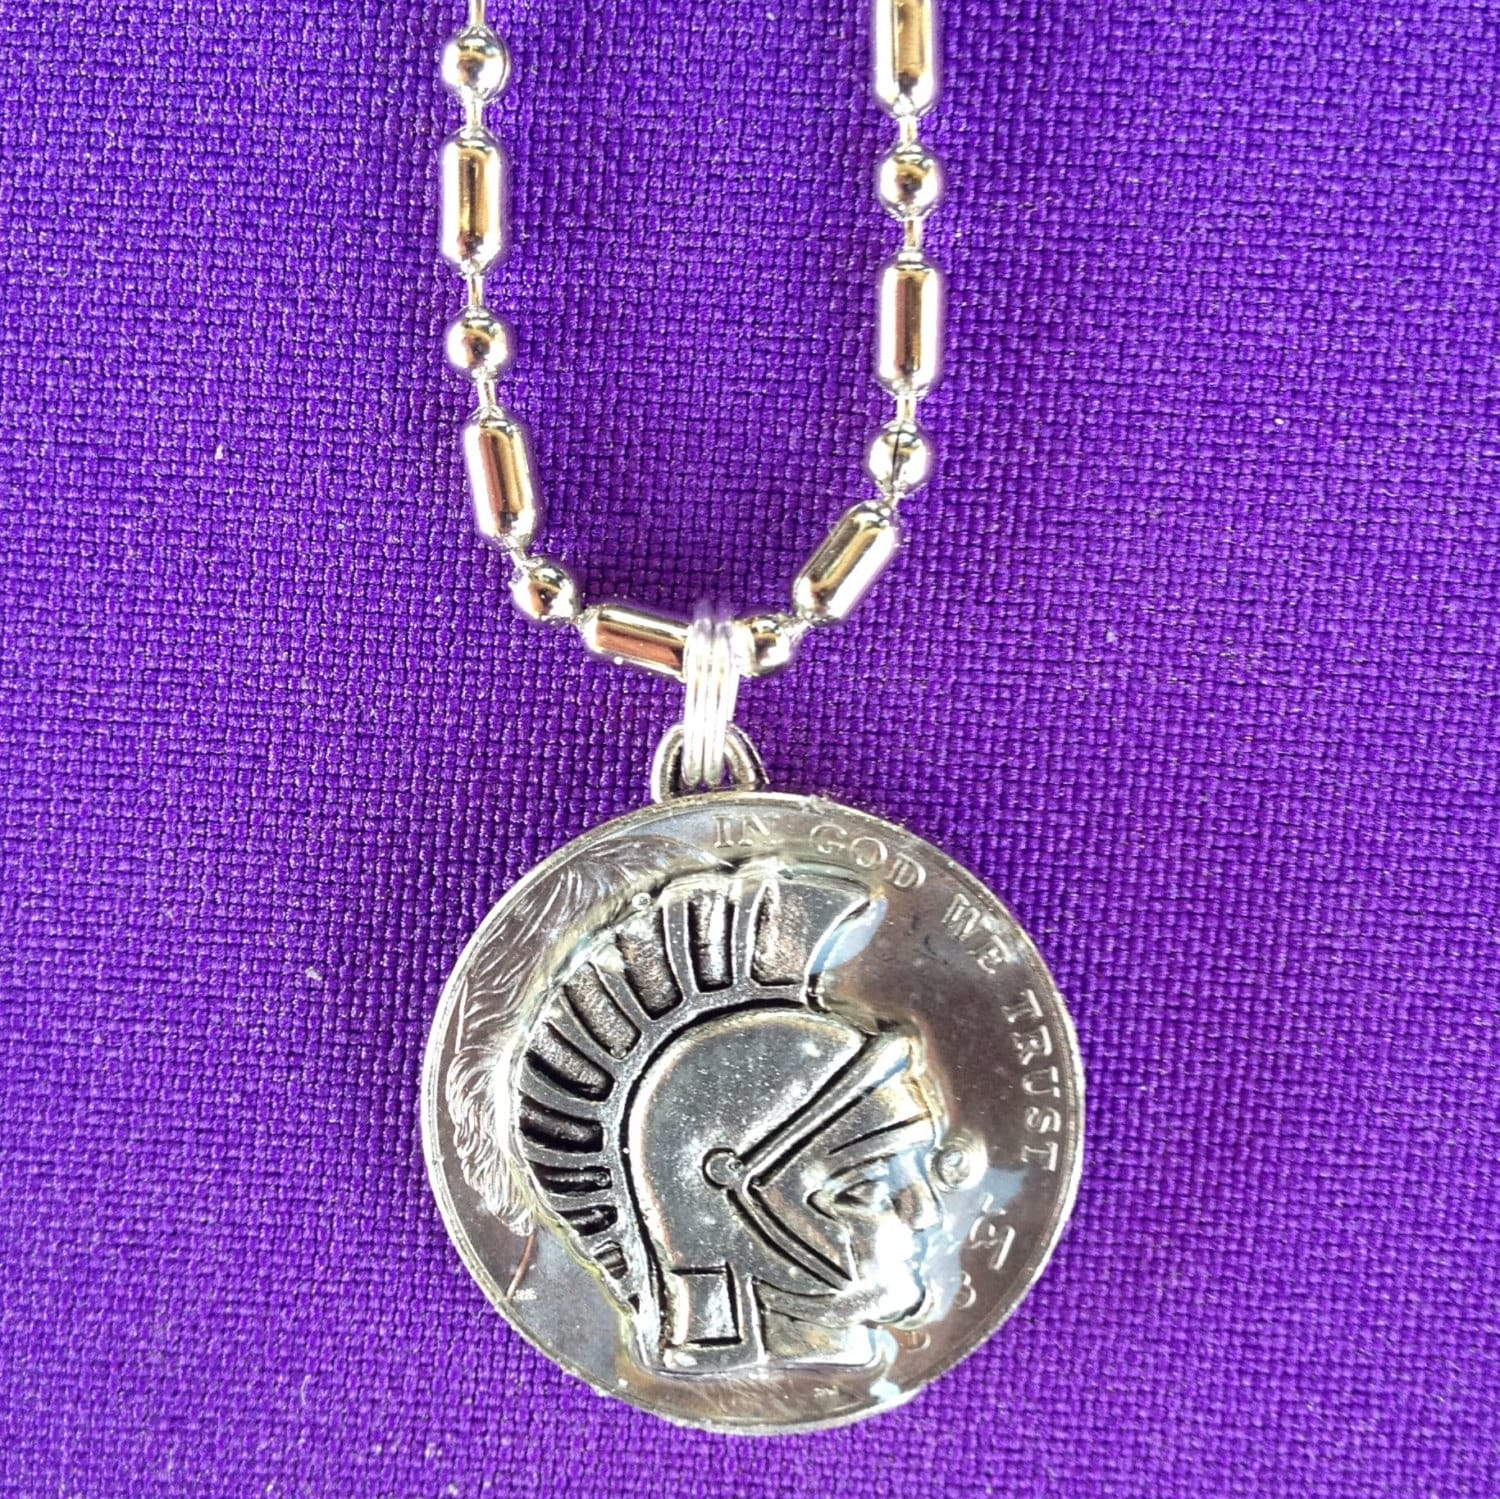 trojan or spartan charm on a real coin necklace by